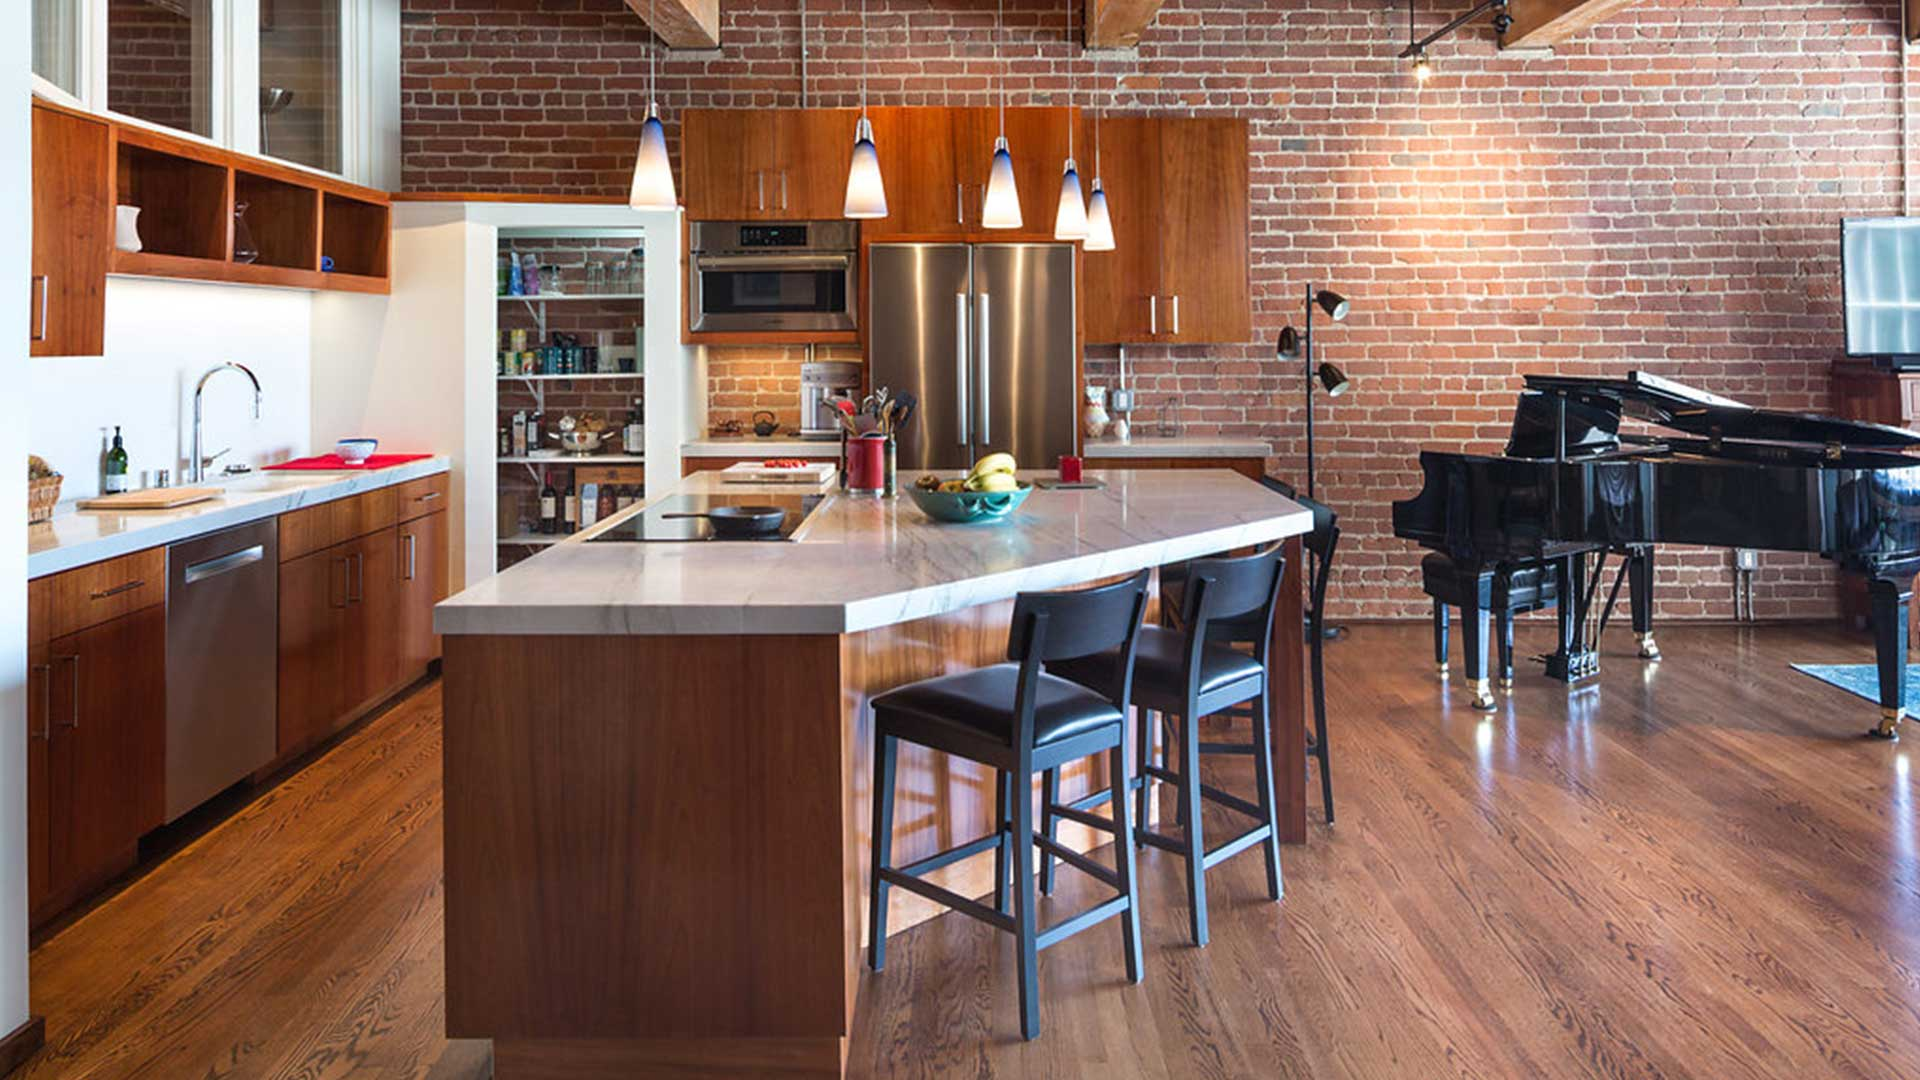 San Francisco Marin County and San Francisco Kitchen Remodeling